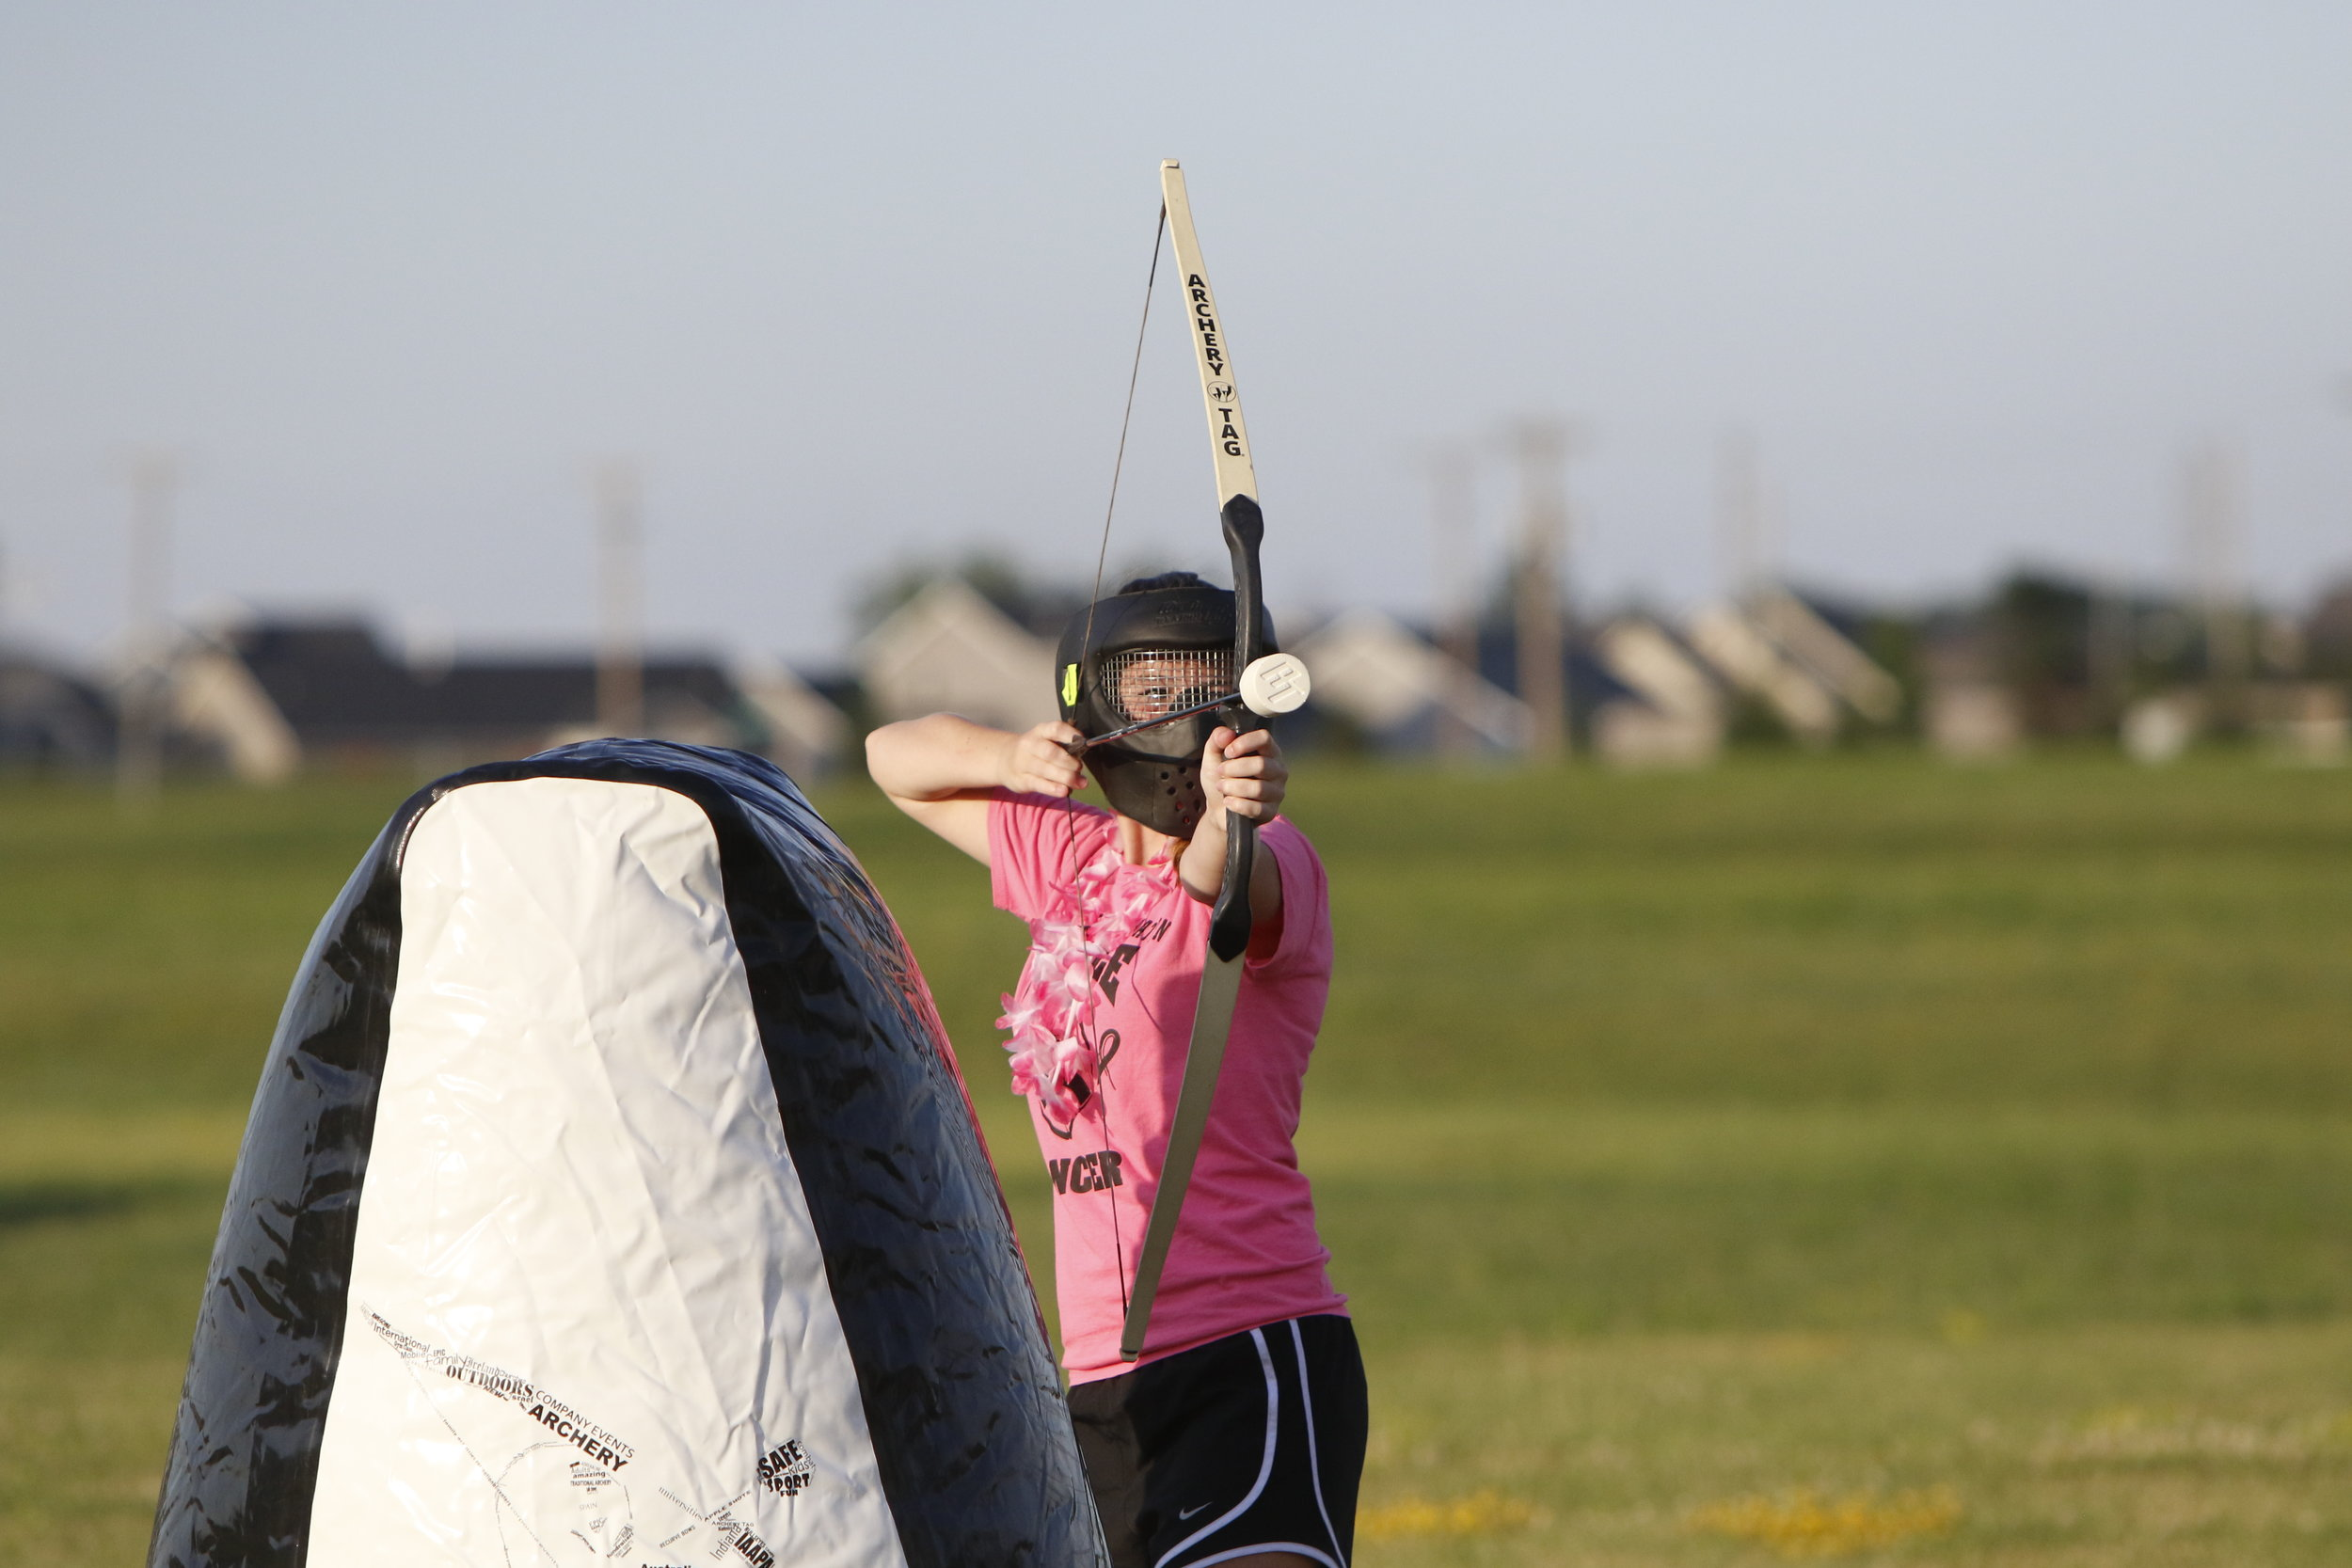 Archery_Tag_Outdoor_Inflatable_027.JPG